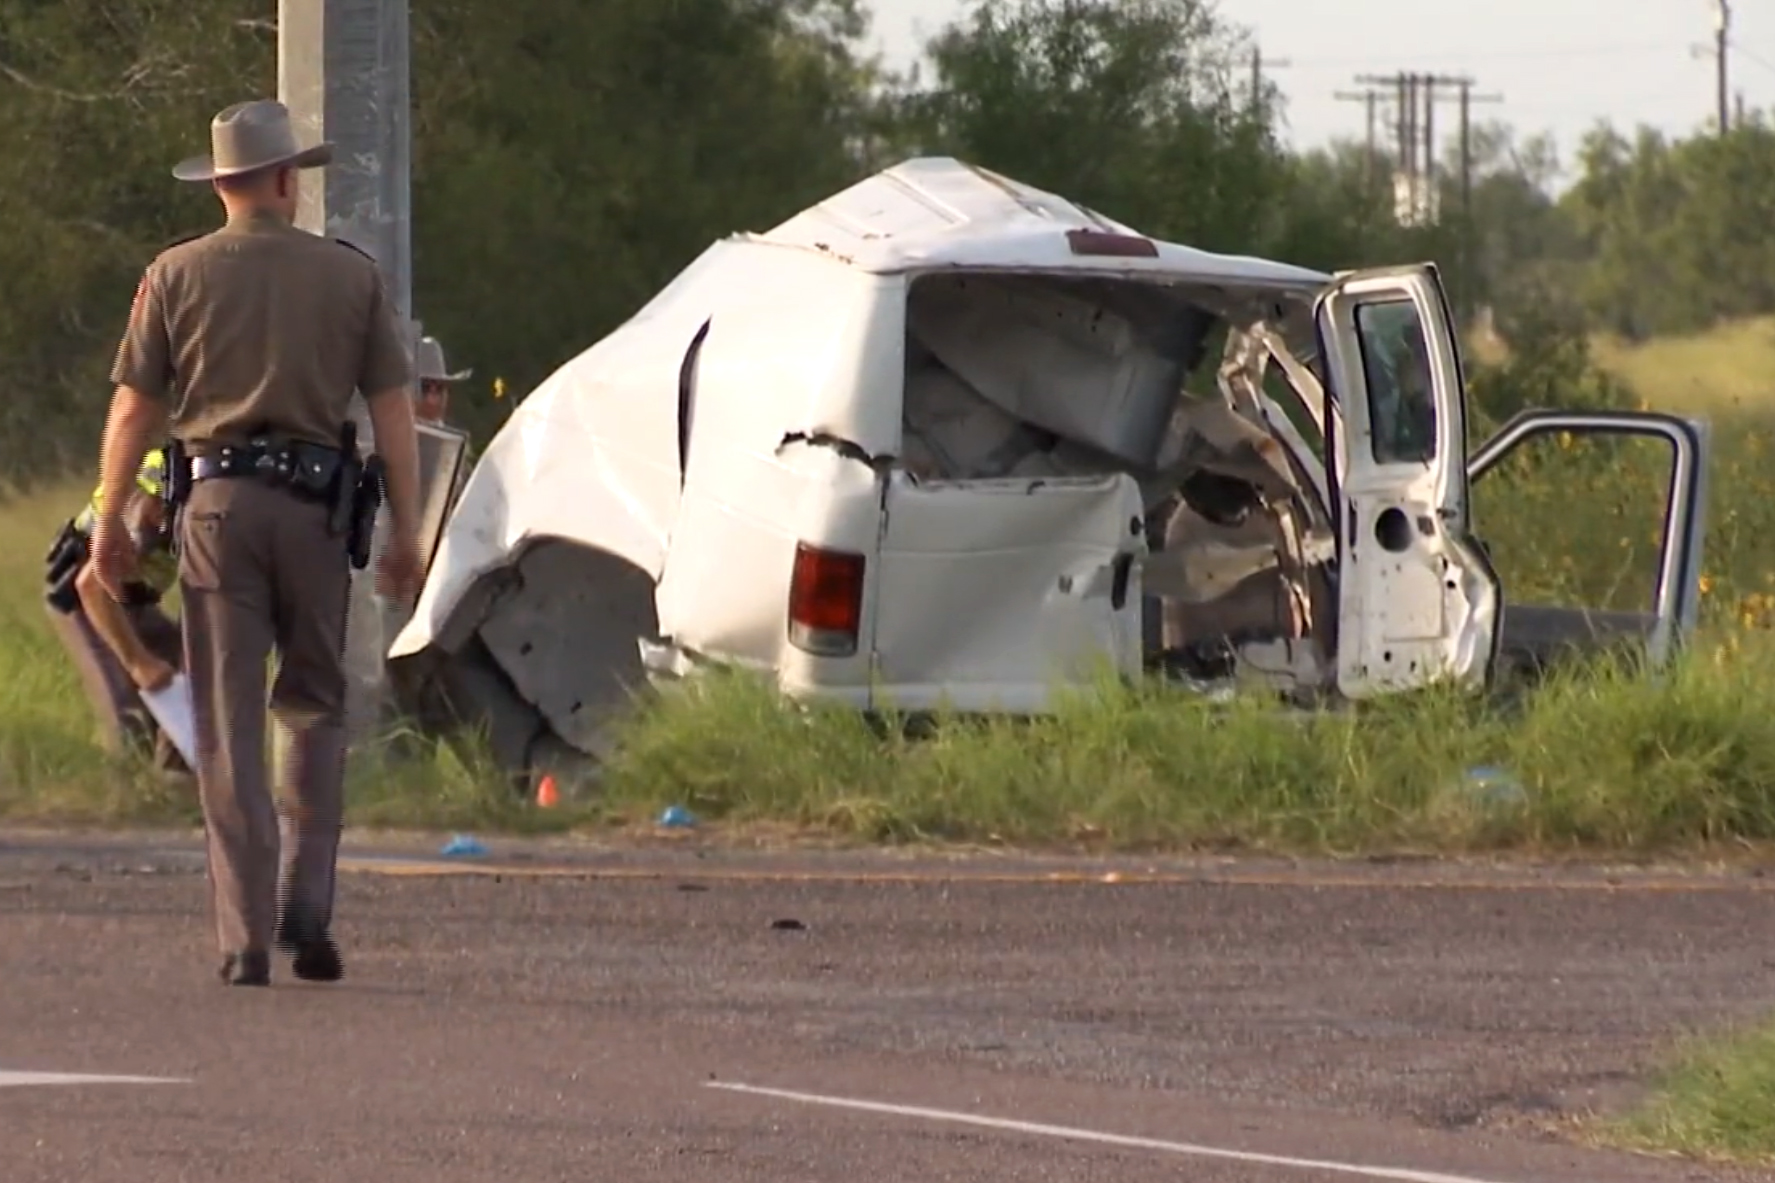 10 killed when packed van crashes in South Texas